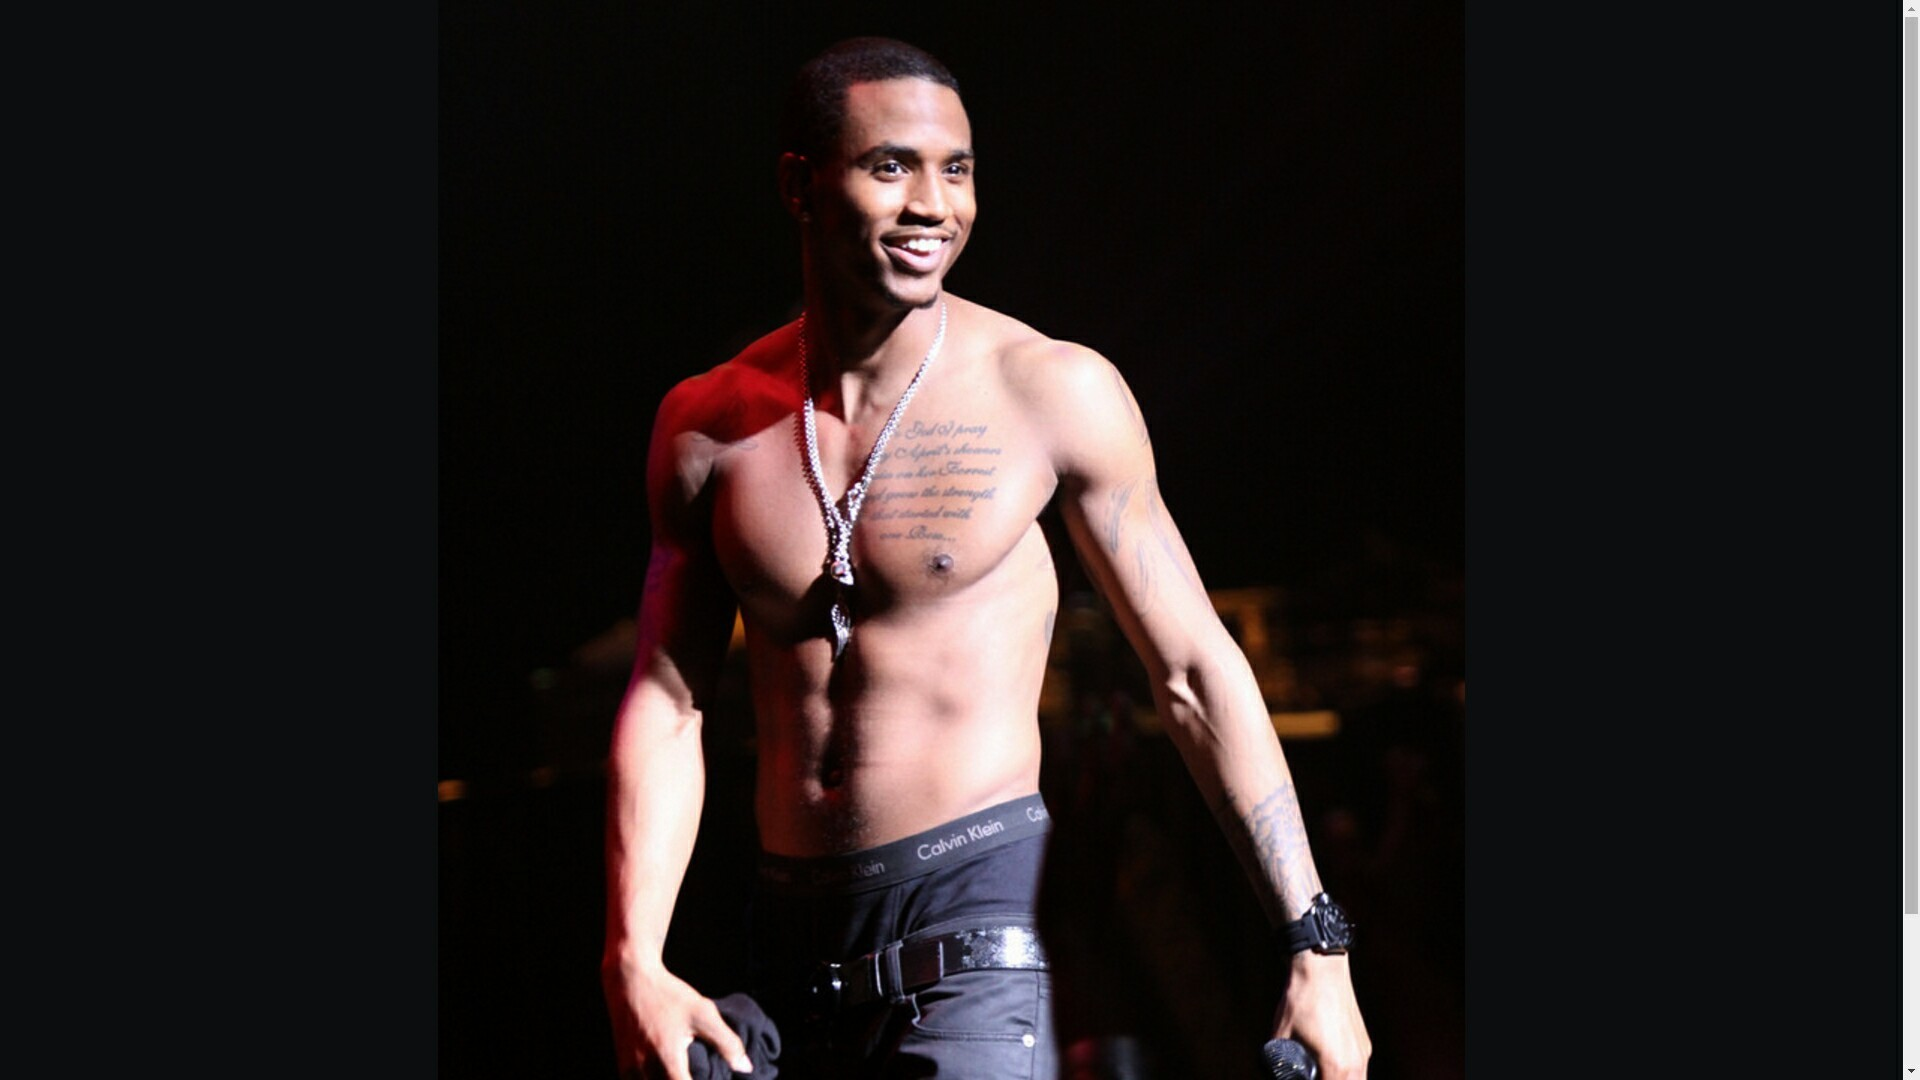 Trey songz wallpapers 68 pictures - Ty dolla sign hd wallpaper ...